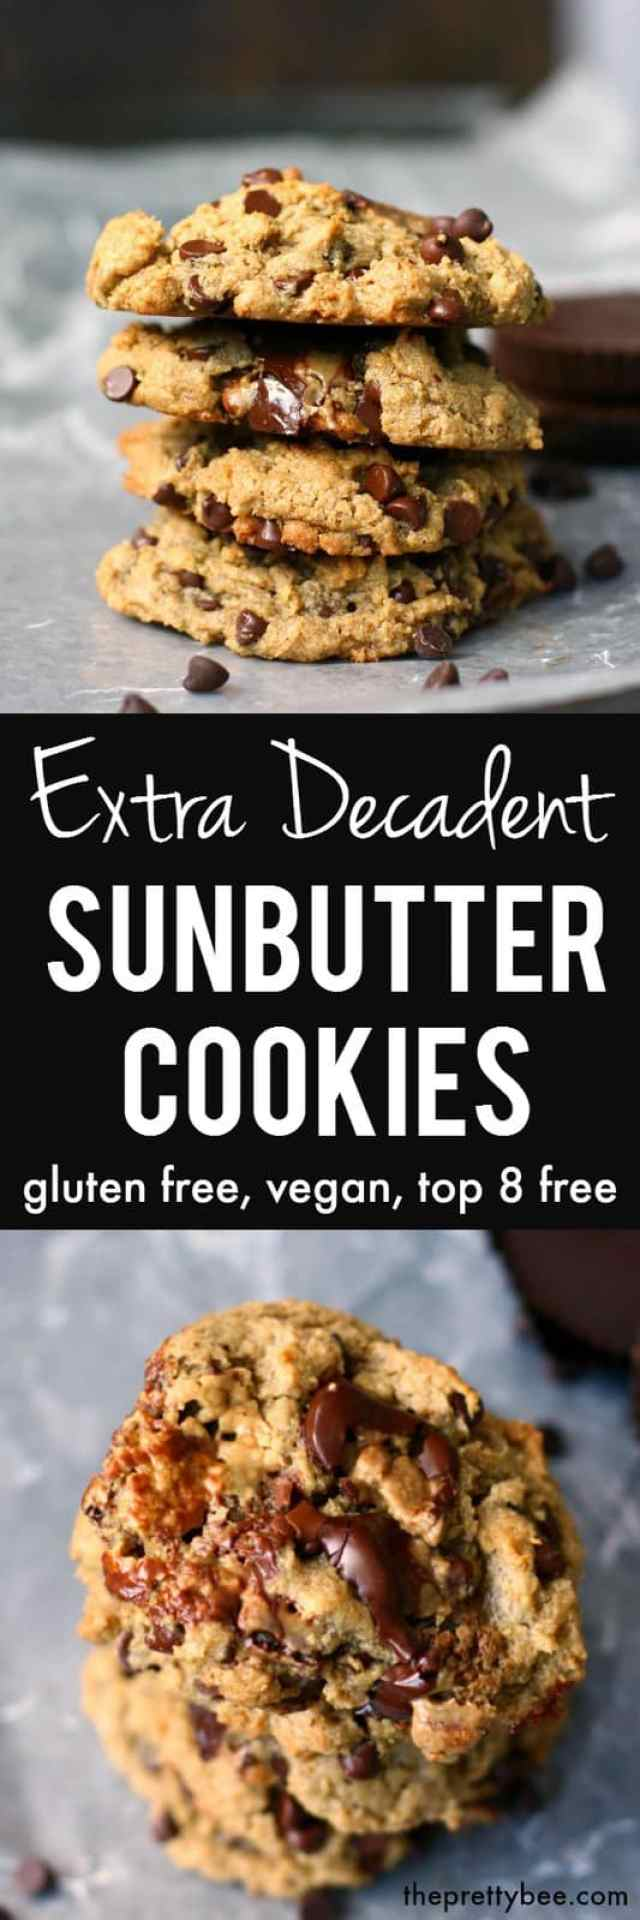 Chewy, gooey, chocolatey and delicious sunbutter cookies are made extra special with the additon of chocolate chips and sun cups.